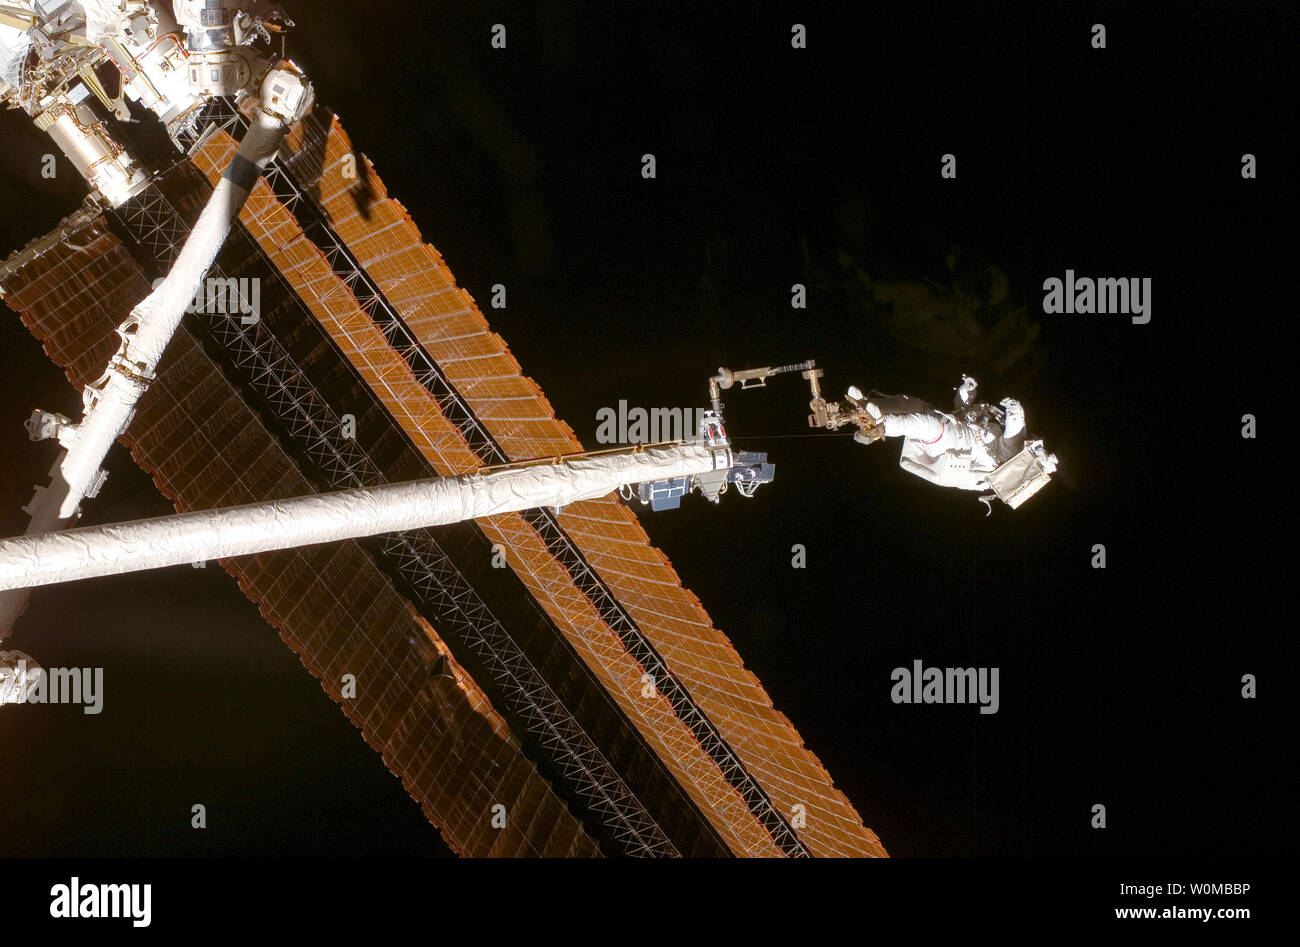 While anchored to a foot restraint on the end of the Orbiter Boom Sensor System (OBSS), astronaut Scott Parazynski, STS-120 mission specialist, assesses his repair work as the solar array is fully deployed during the mission's fourth session of extravehicular activity (EVA) while Space Shuttle Discovery is docked with the International Space Station on November 3, 2007. During the 7-hour, 19-minute spacewalk, Parazynski cut a snagged wire and installed homemade stabilizers designed to strengthen the damaged solar array's structure and stability in the vicinity of the damage. Astronaut Doug Whe - Stock Image